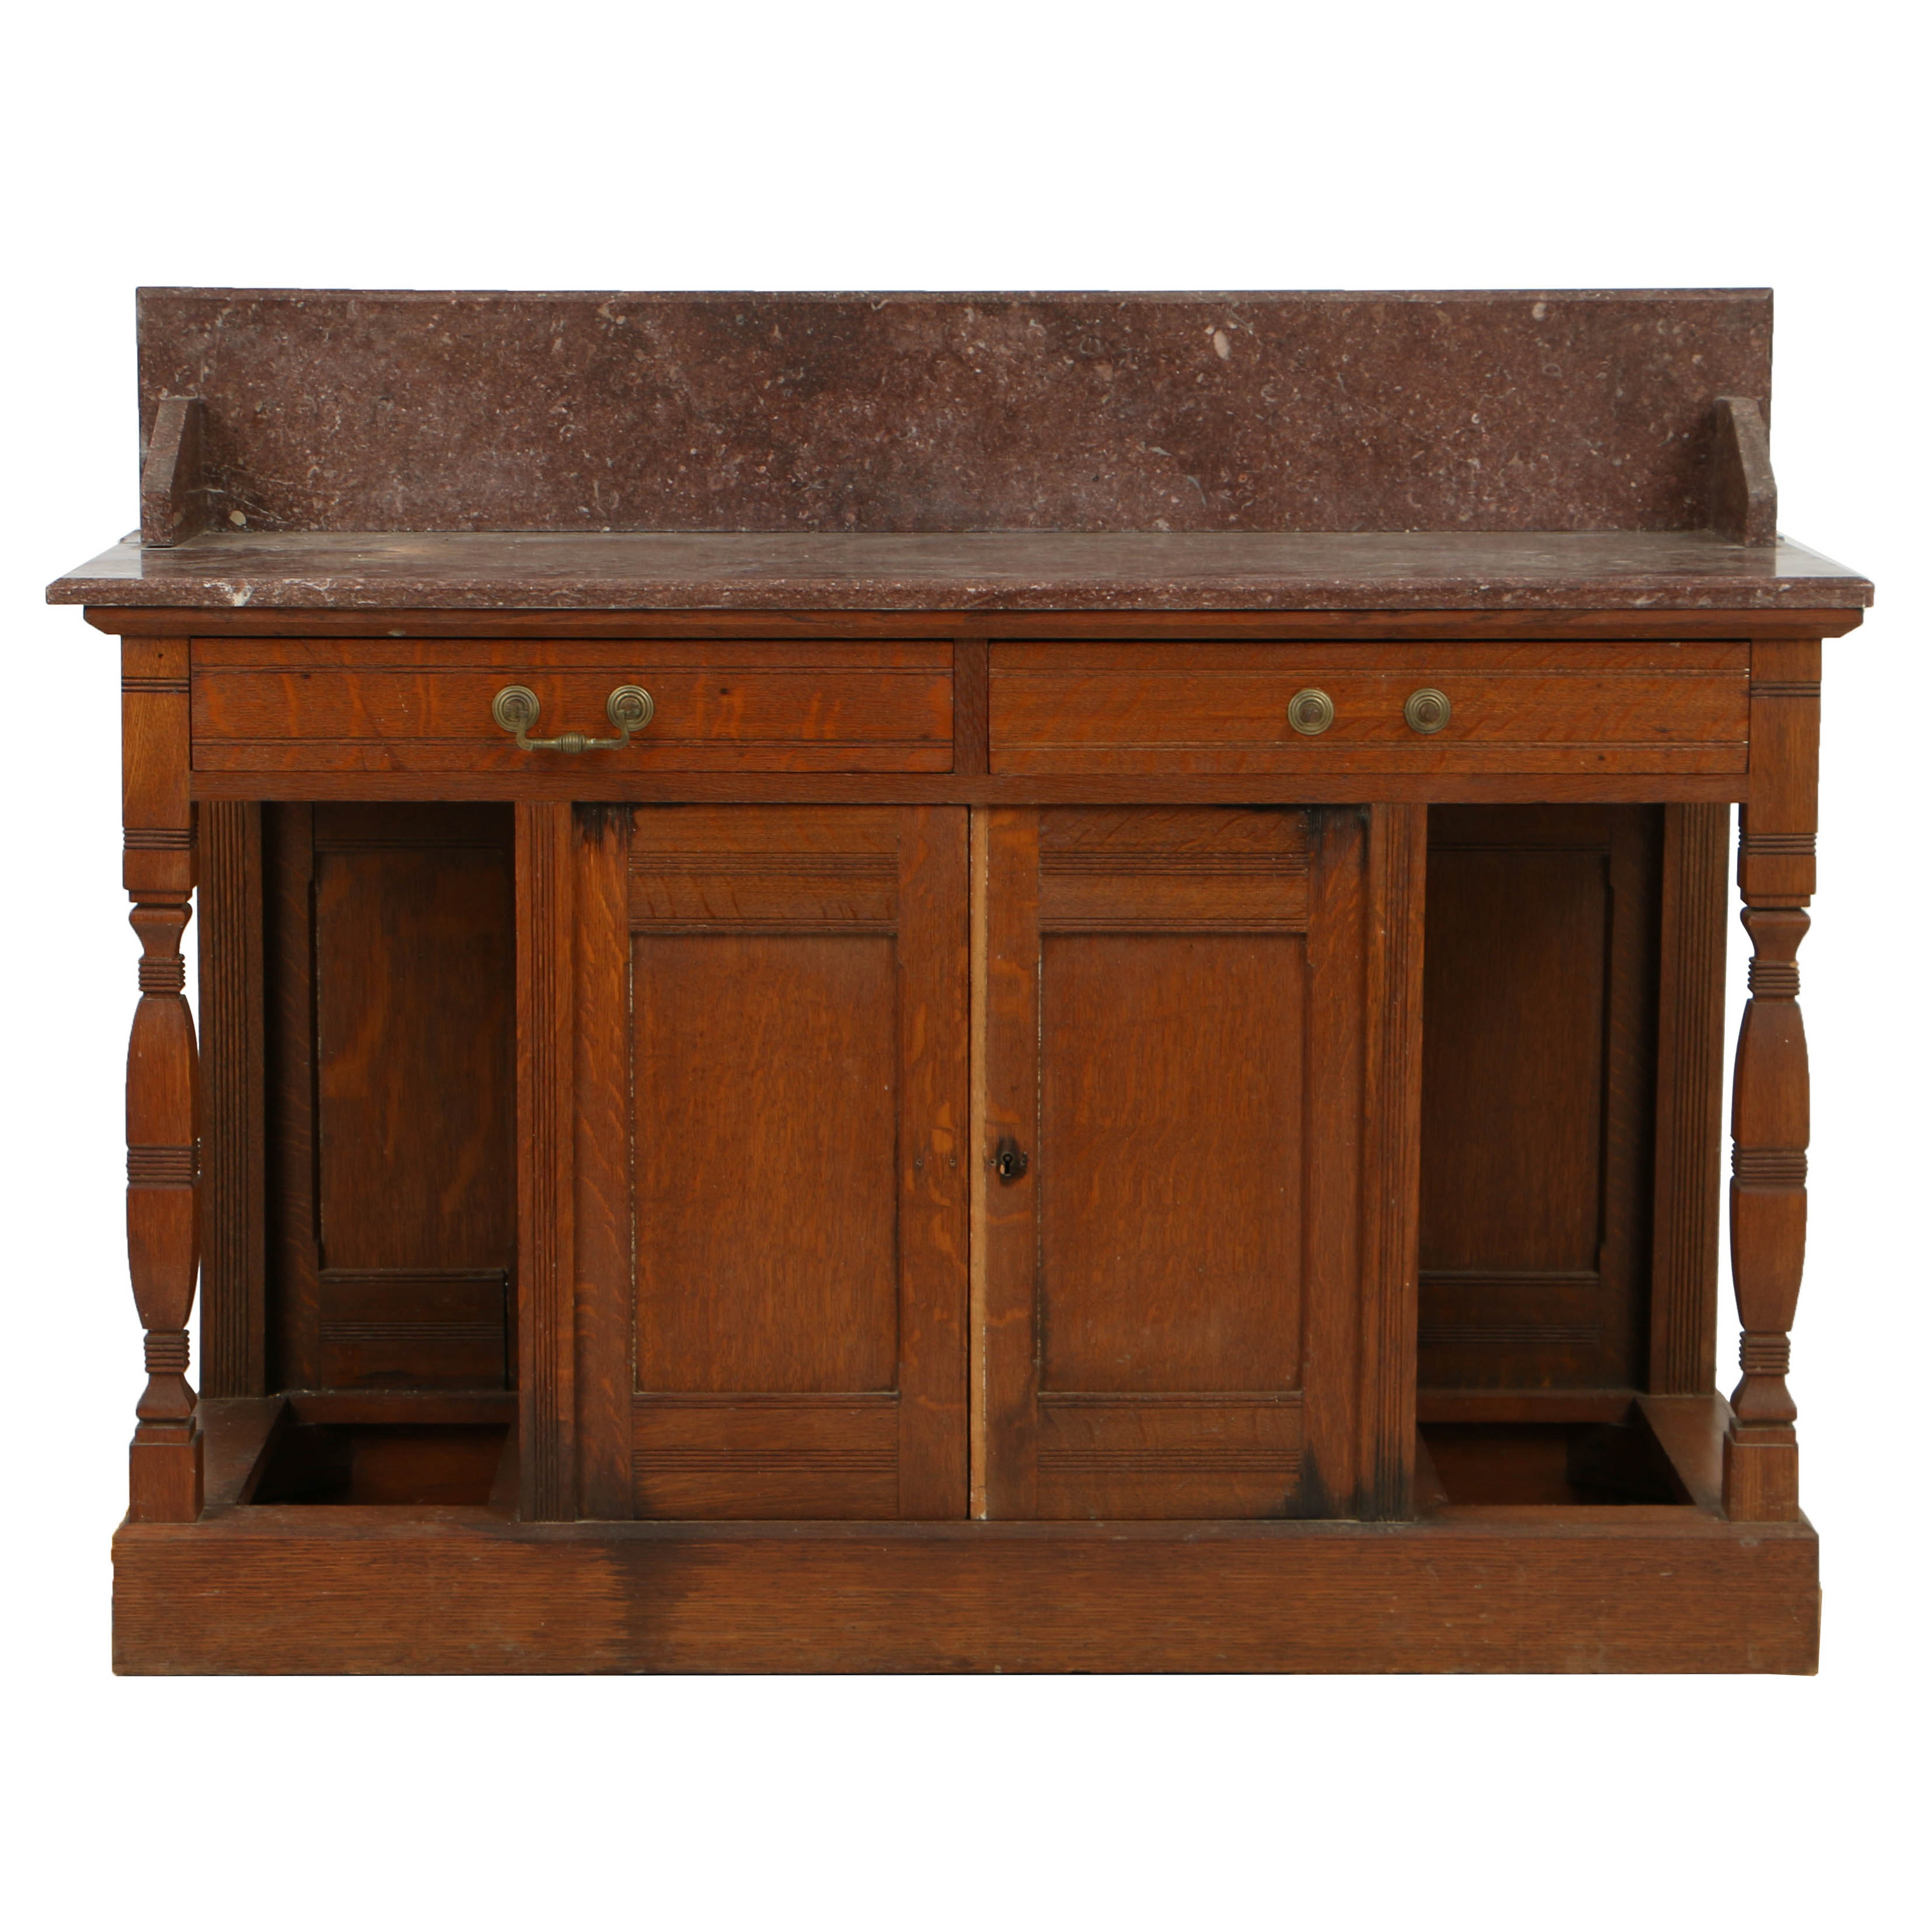 Antique Victorian Oak Server with Rouge Marble Top, Late 19th Century